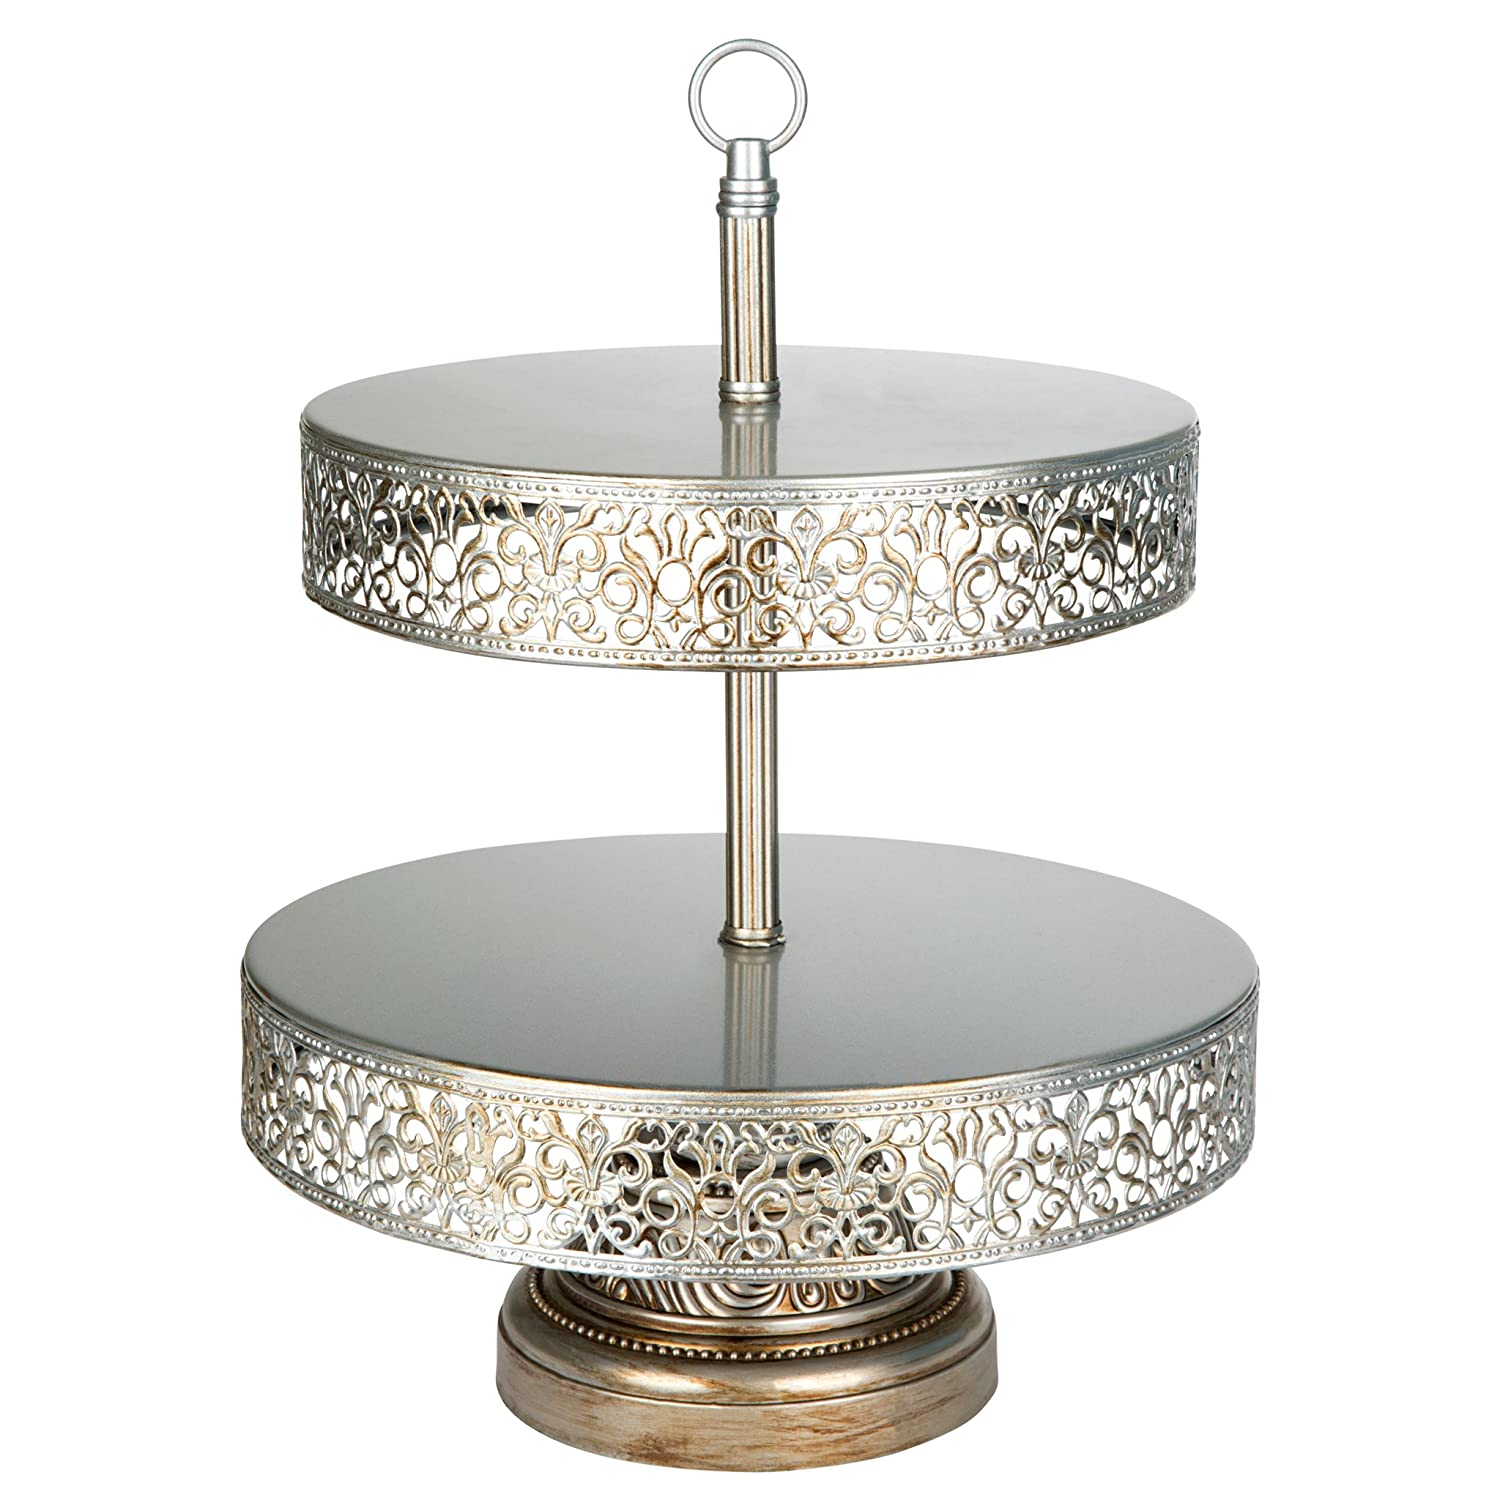 Victoria Collection Antique Gold 2 Tier Cupcake Stand, Round Metal ...